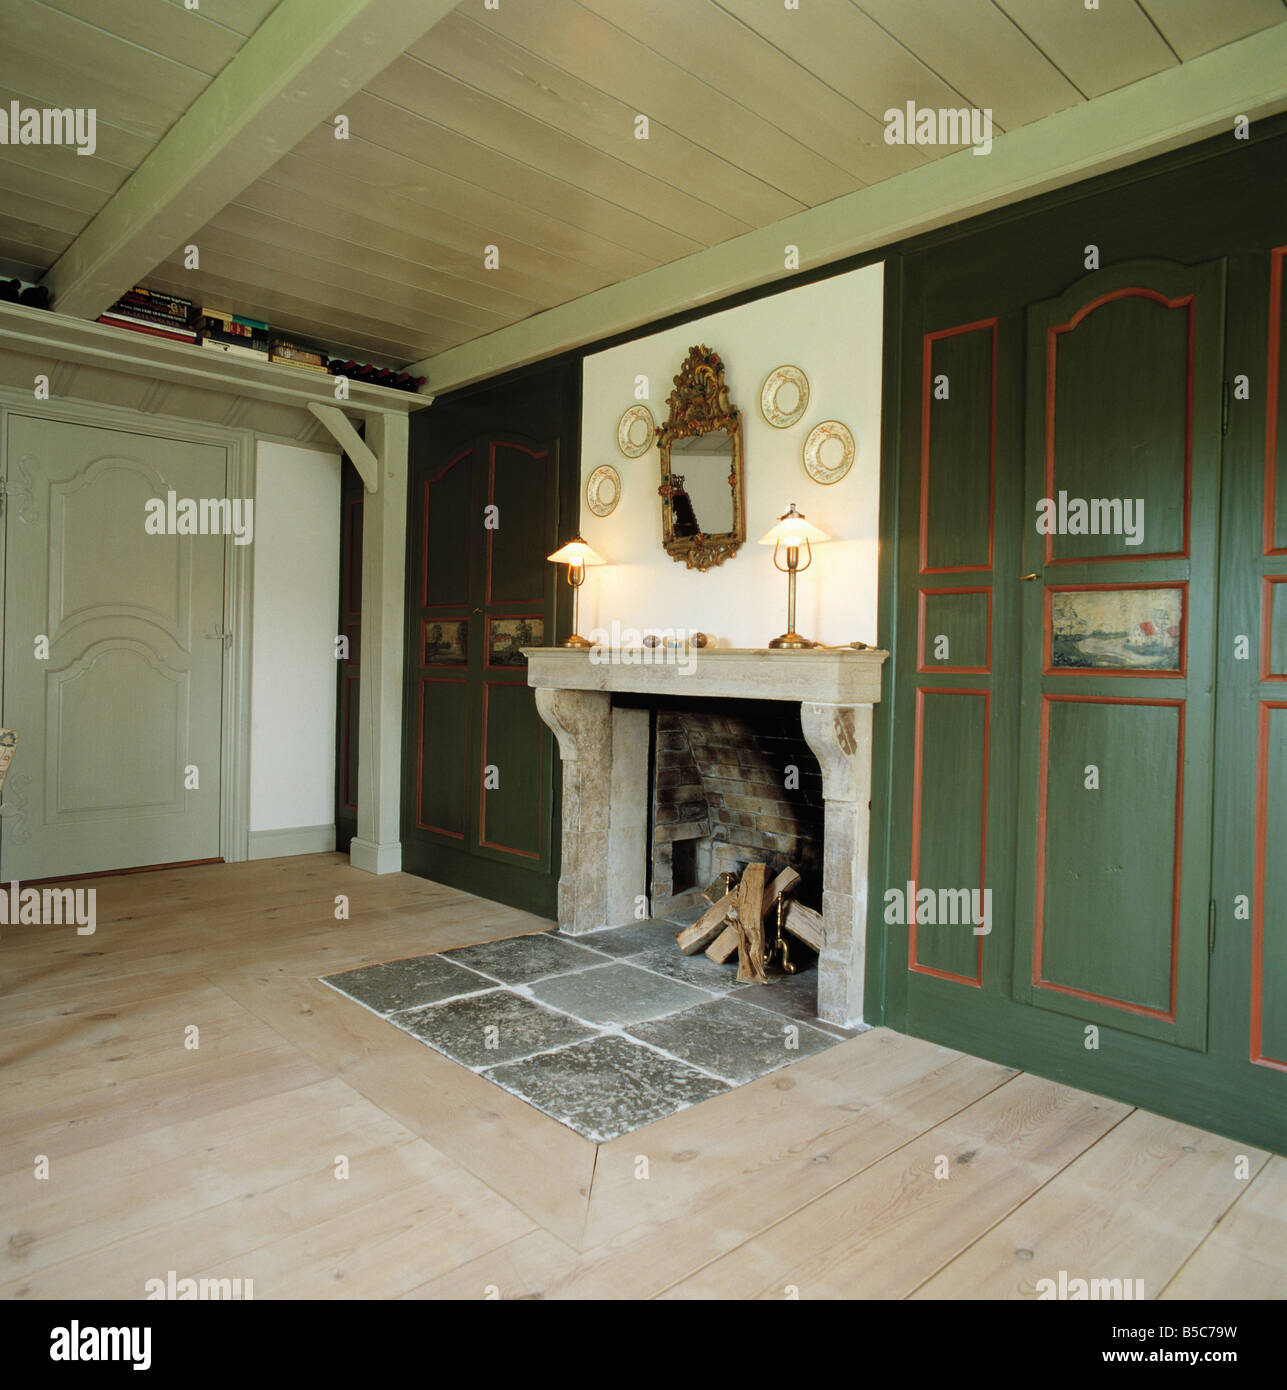 https www alamy com stock photo slate tiles set into wooden floor in front of fireplace with stone 20552837 html